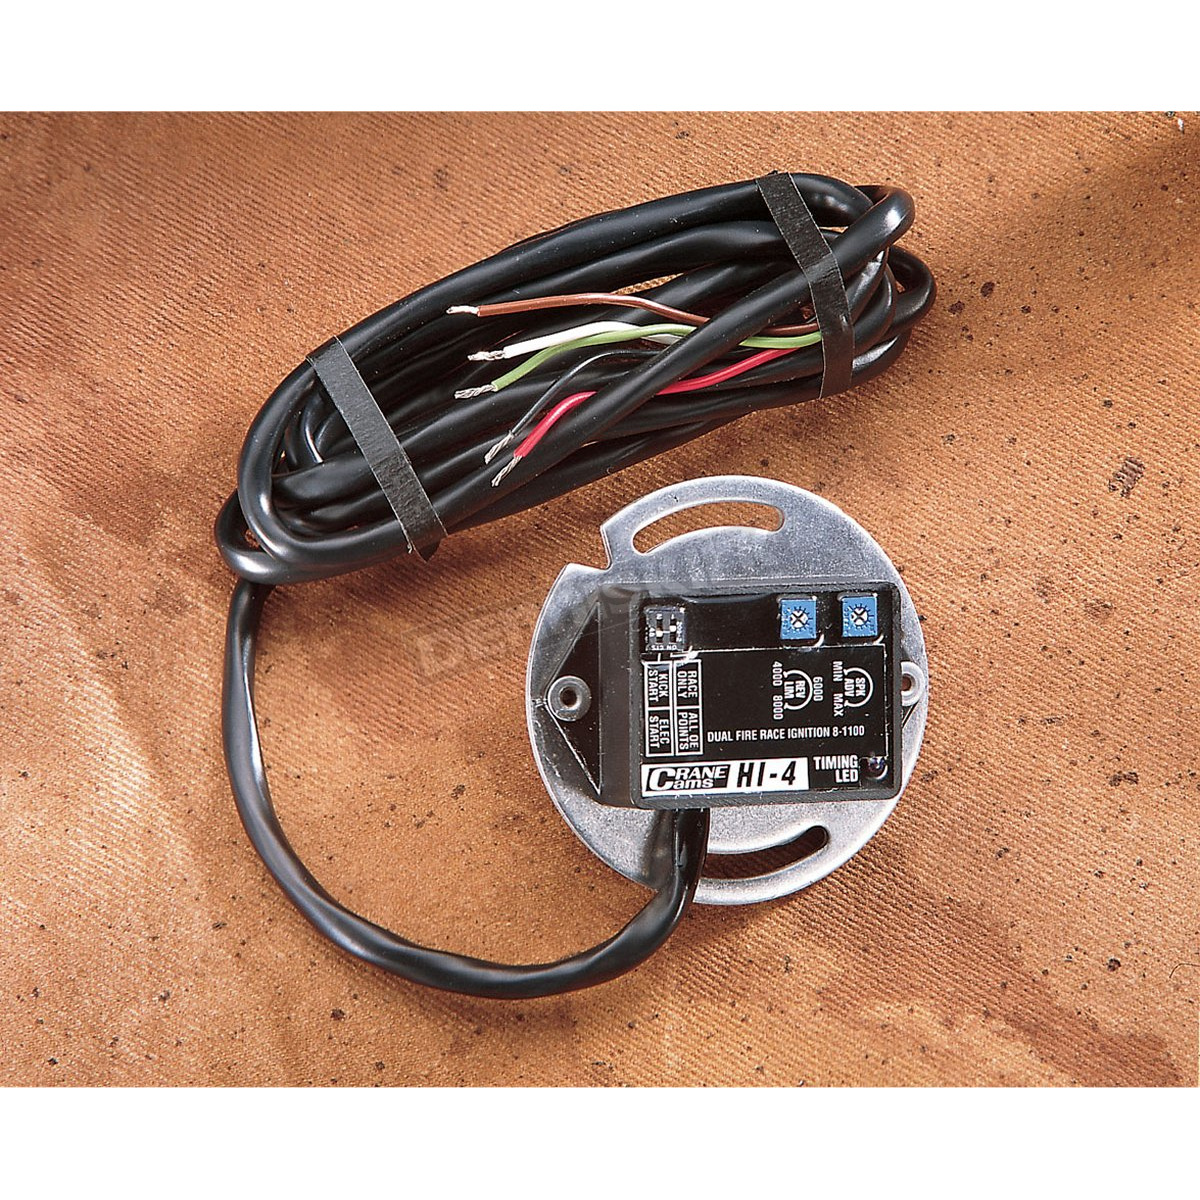 Crane    Cams    Dual   Fire    Crane       HI      4    Ignition System  81100